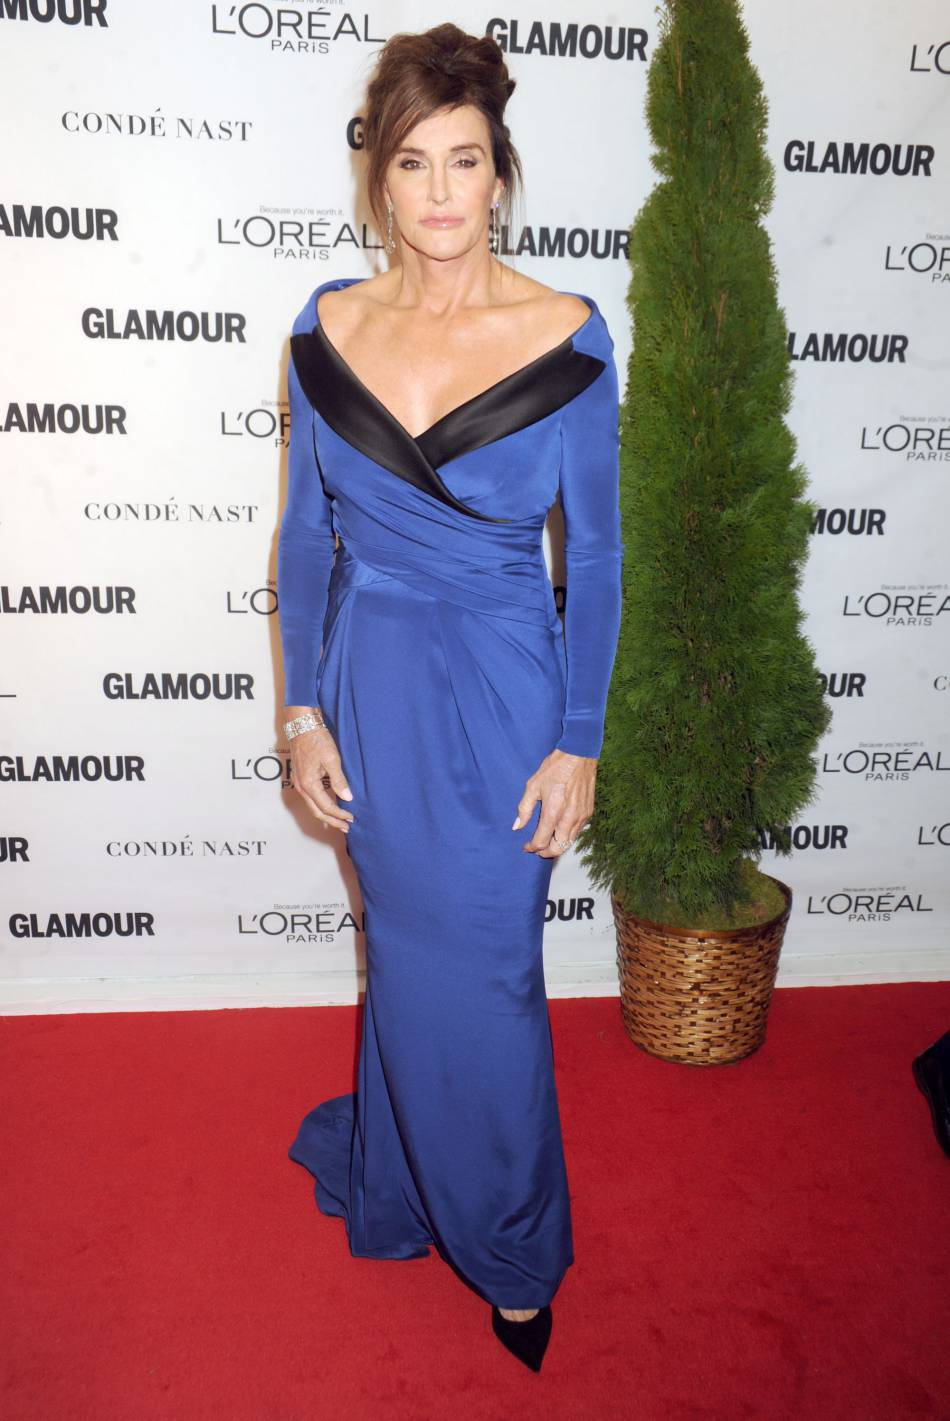 Caitlyn Jenner en Moschino Couture aux Glamour Awards le 9 novembre 2015 à New York.